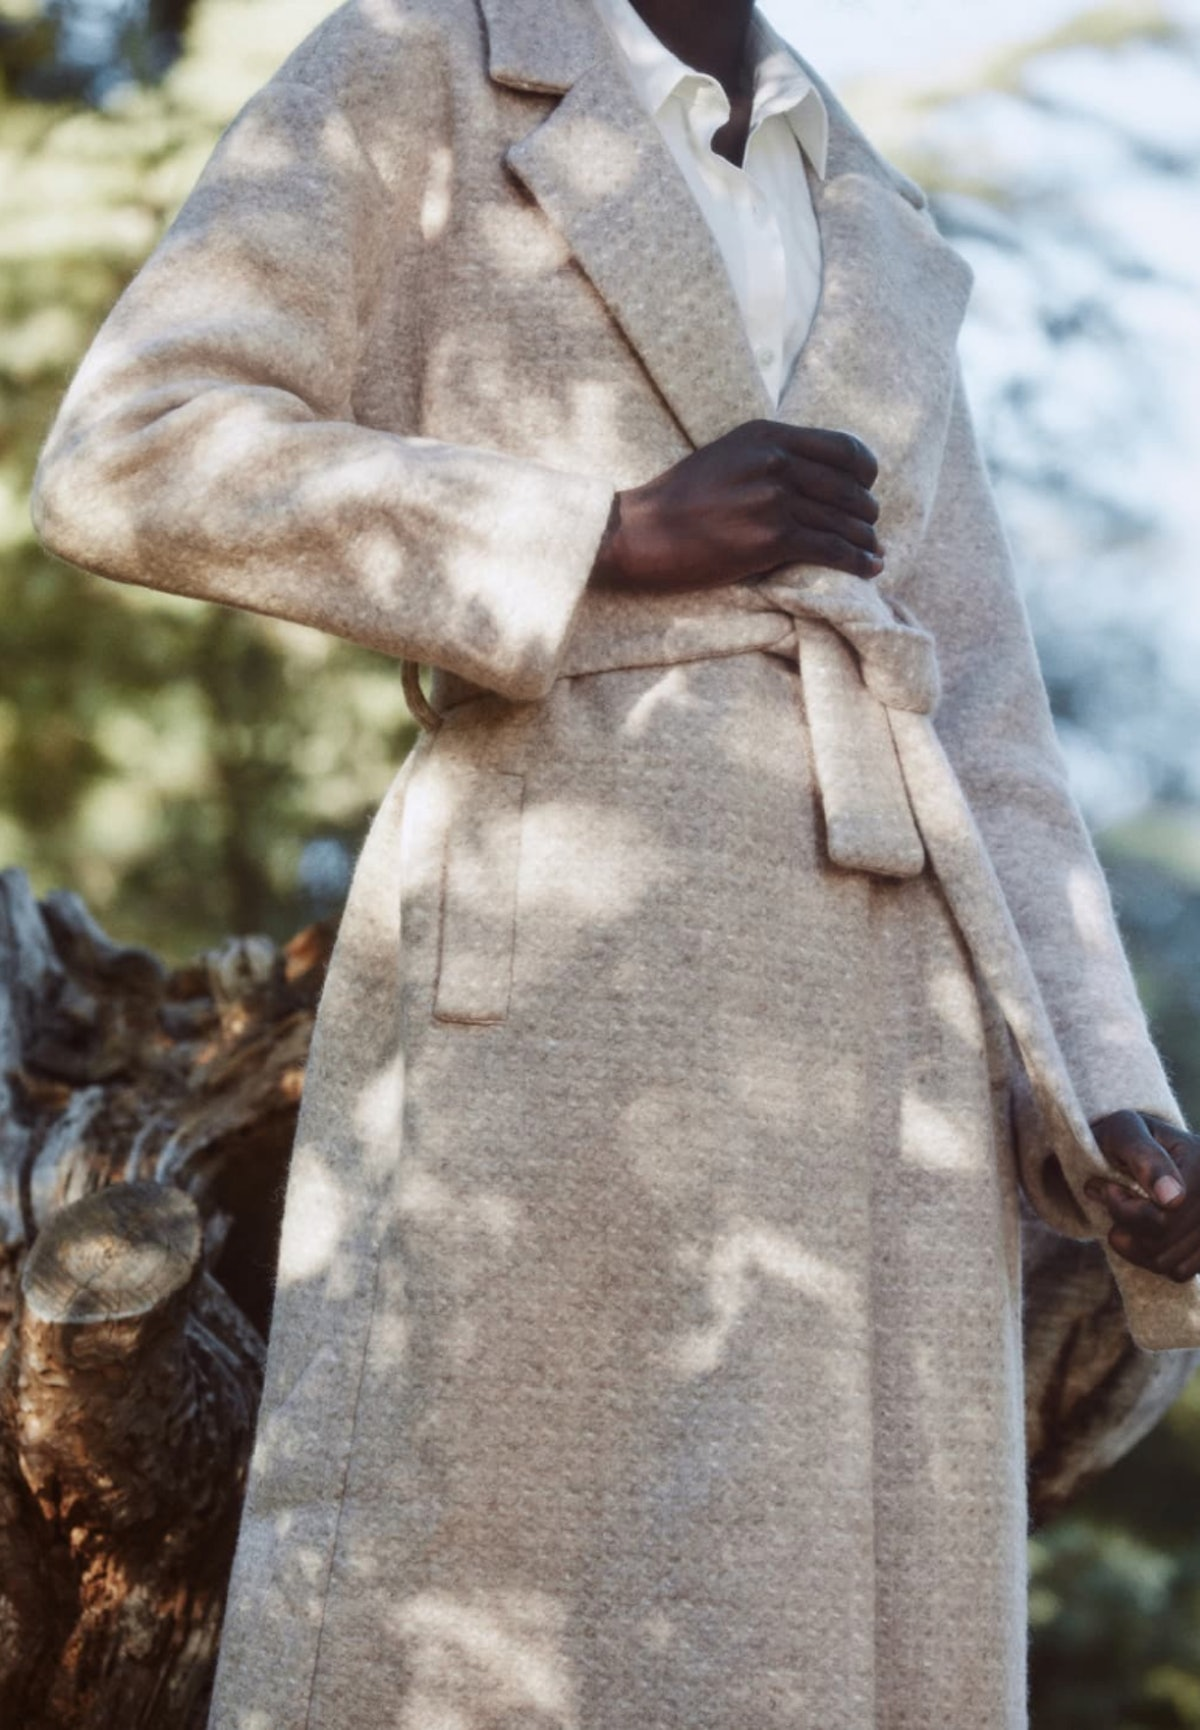 Reformation's Gooding Coat in camel.